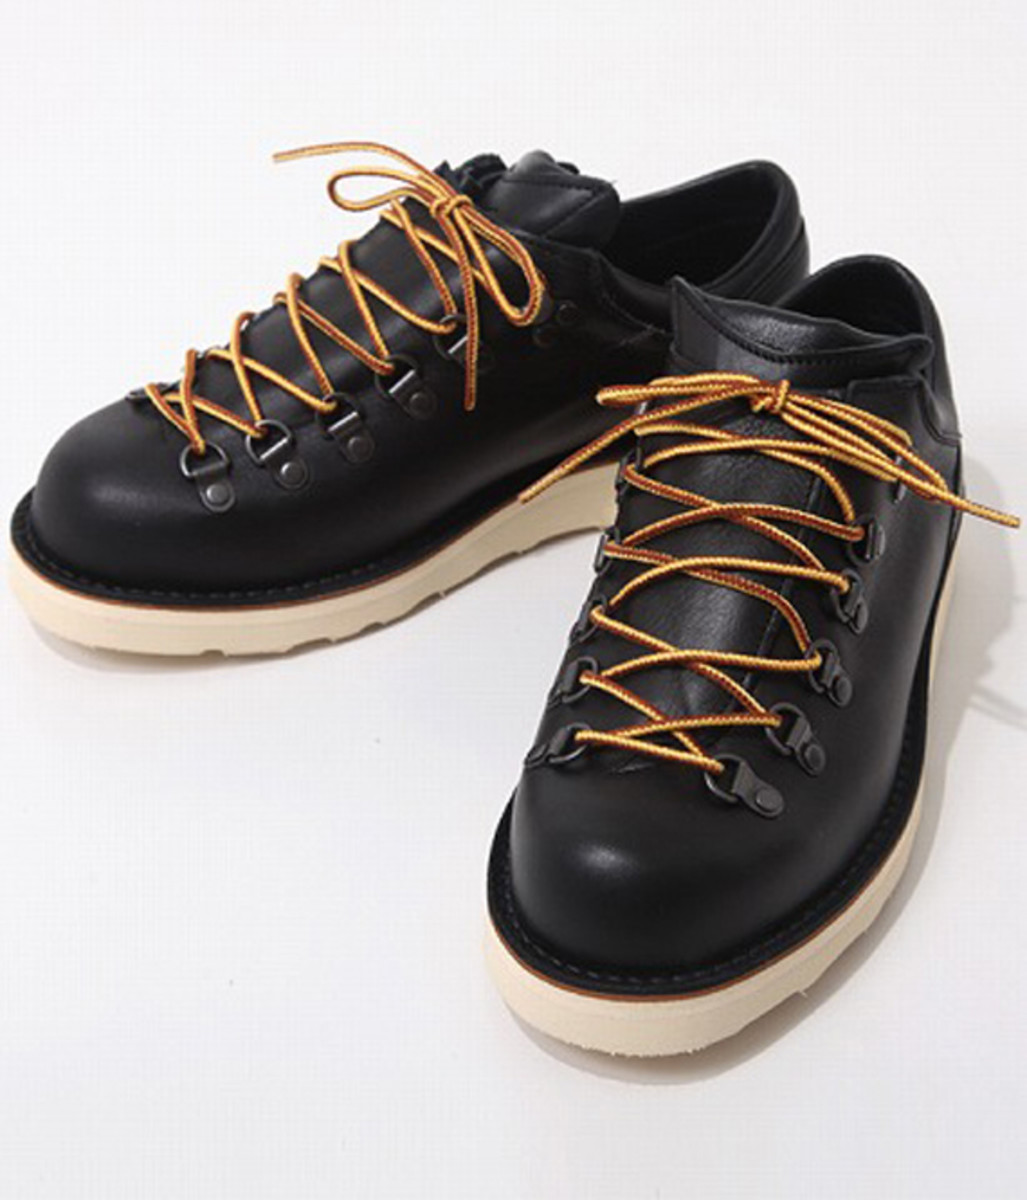 Mt. Ridge Low Black 2